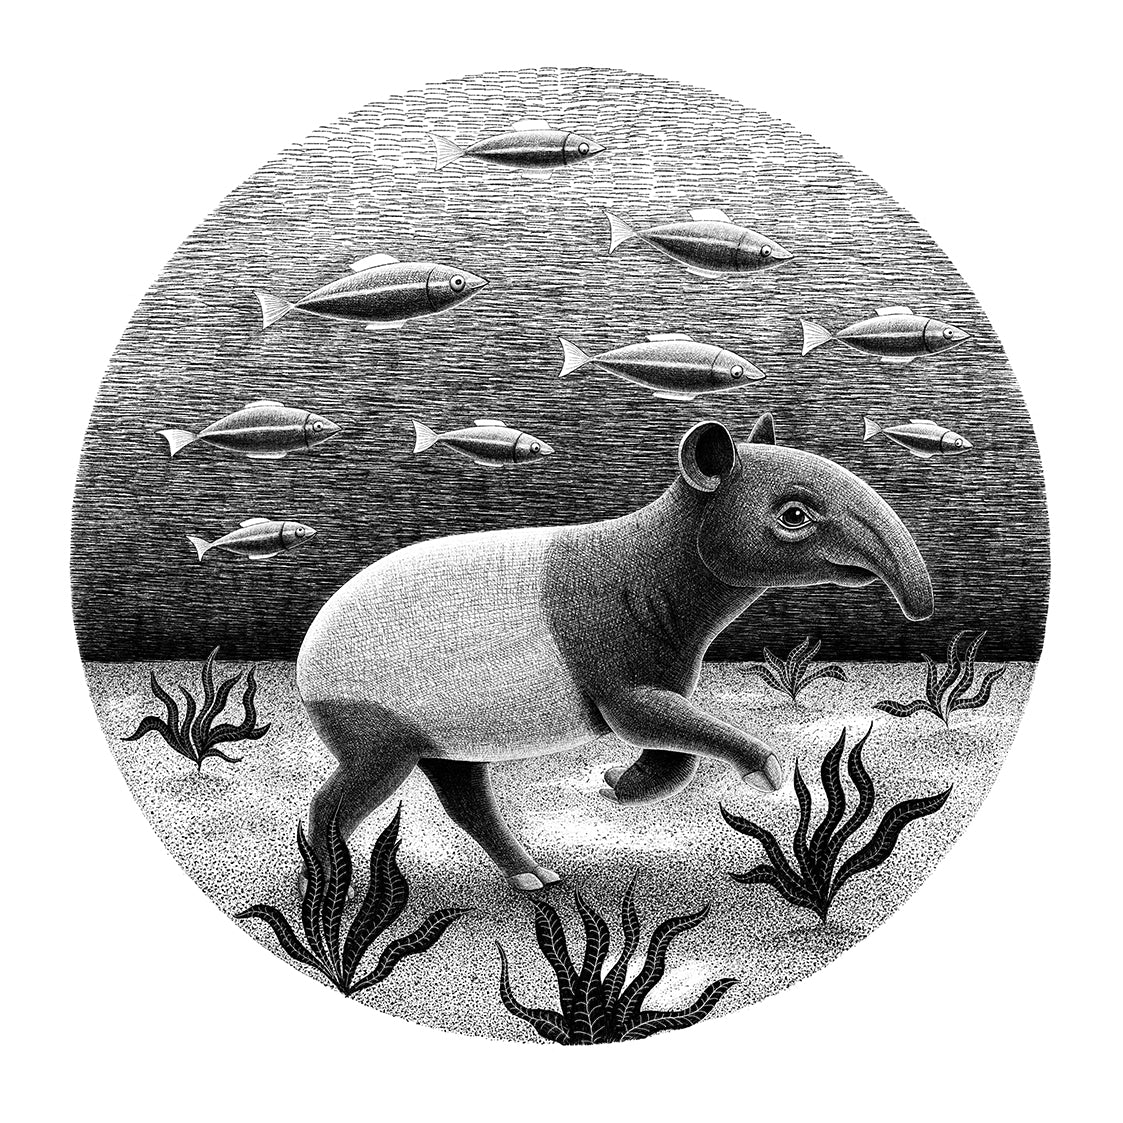 Tapir Underwater | Endangered Animals Collection | Art Print for Sale | Lucia Eggenhoffer | Eggenland